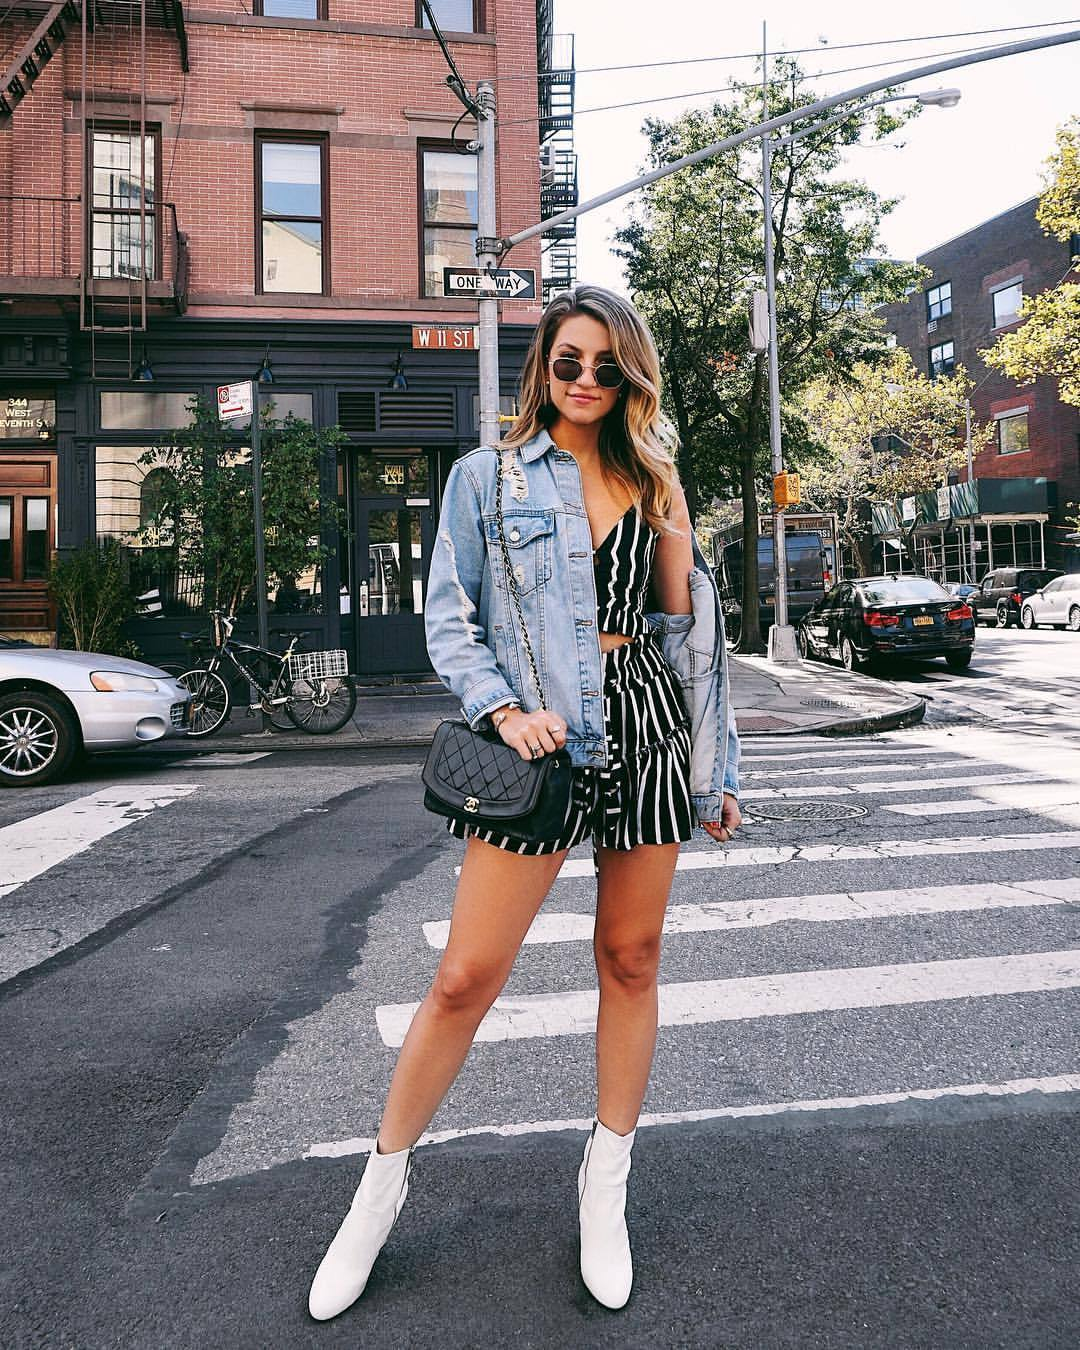 Cassandra DiMicco, Cass DiMicco, Dressed For Dreams, NYC, New York City, New York, Street Style NYC, Street Style 2017, Street Style Outfits, fashion trends 2017, distressed denim jacket, steve madden booties, planet blue nyc, ray-ban womens, vintage chanel, chanel bags